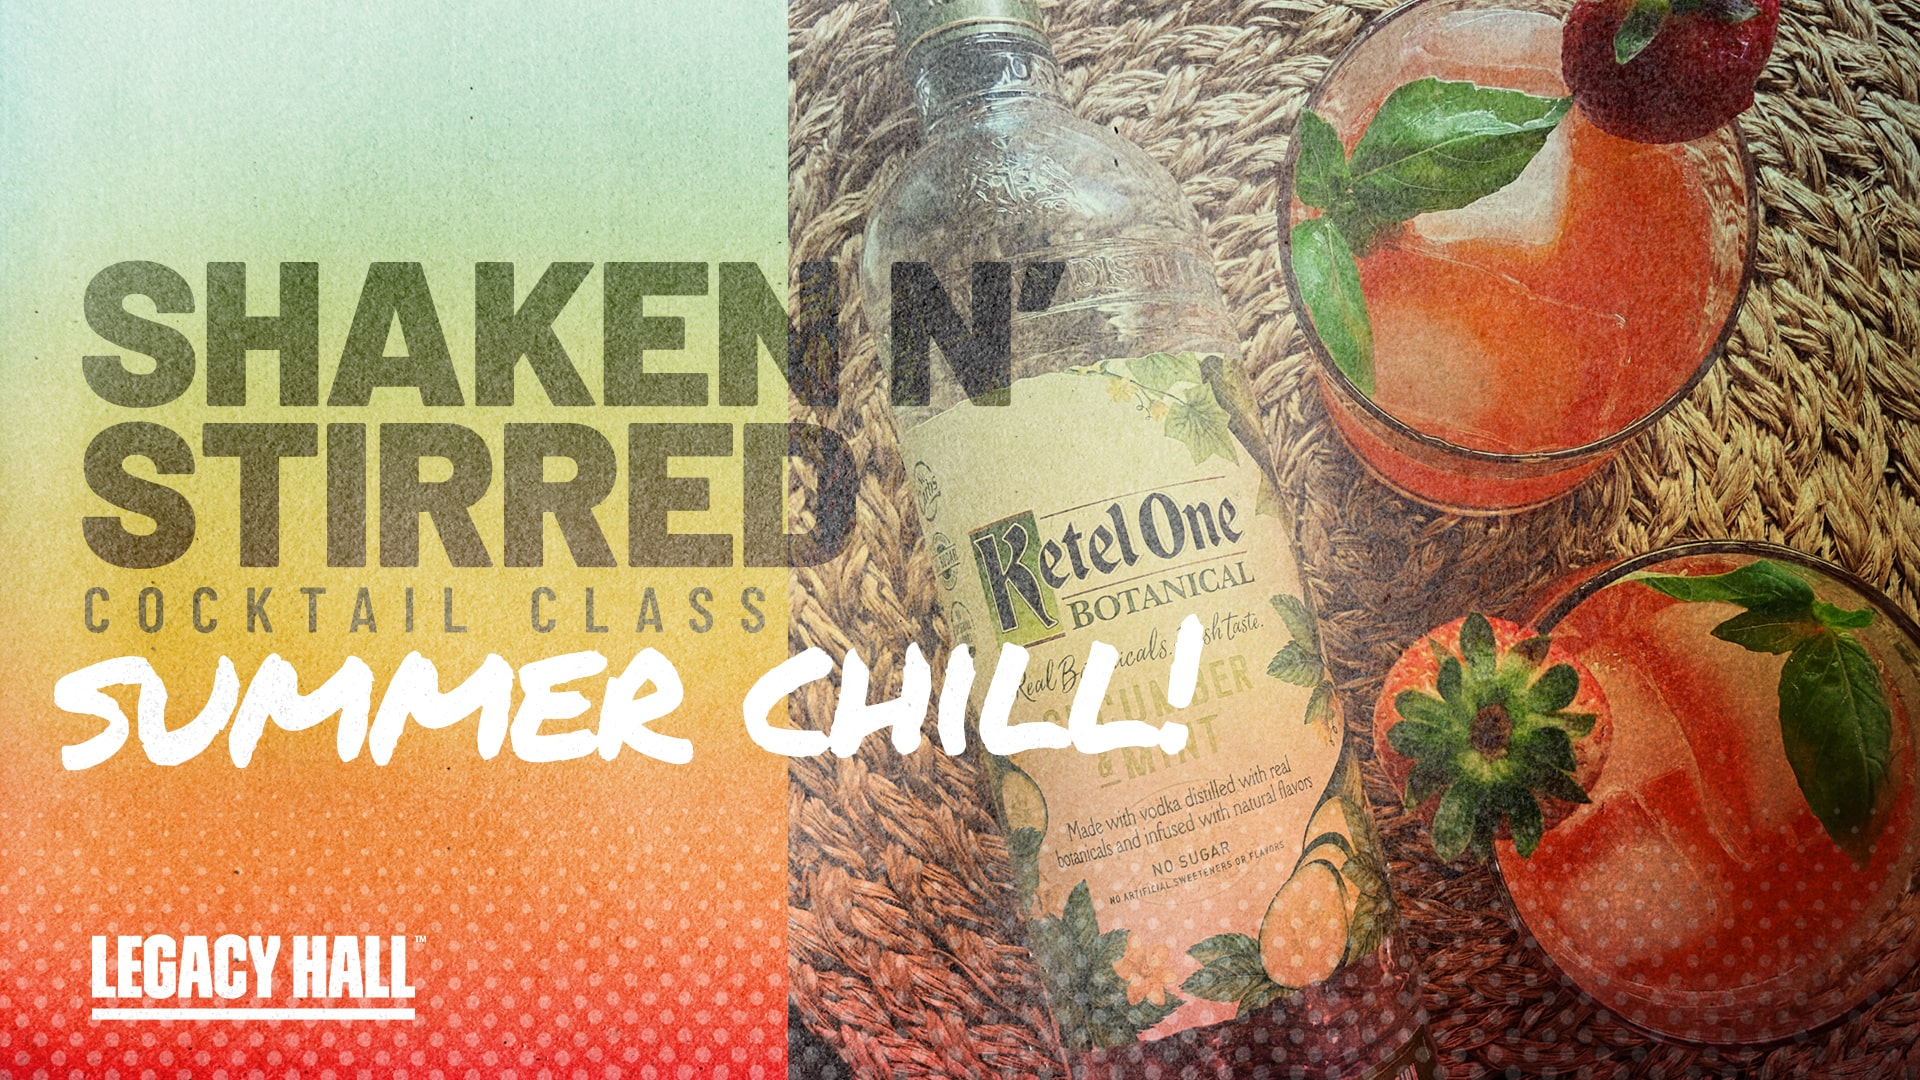 Promo image of Shaken N' Stirred: Ketel One Summer Drinks